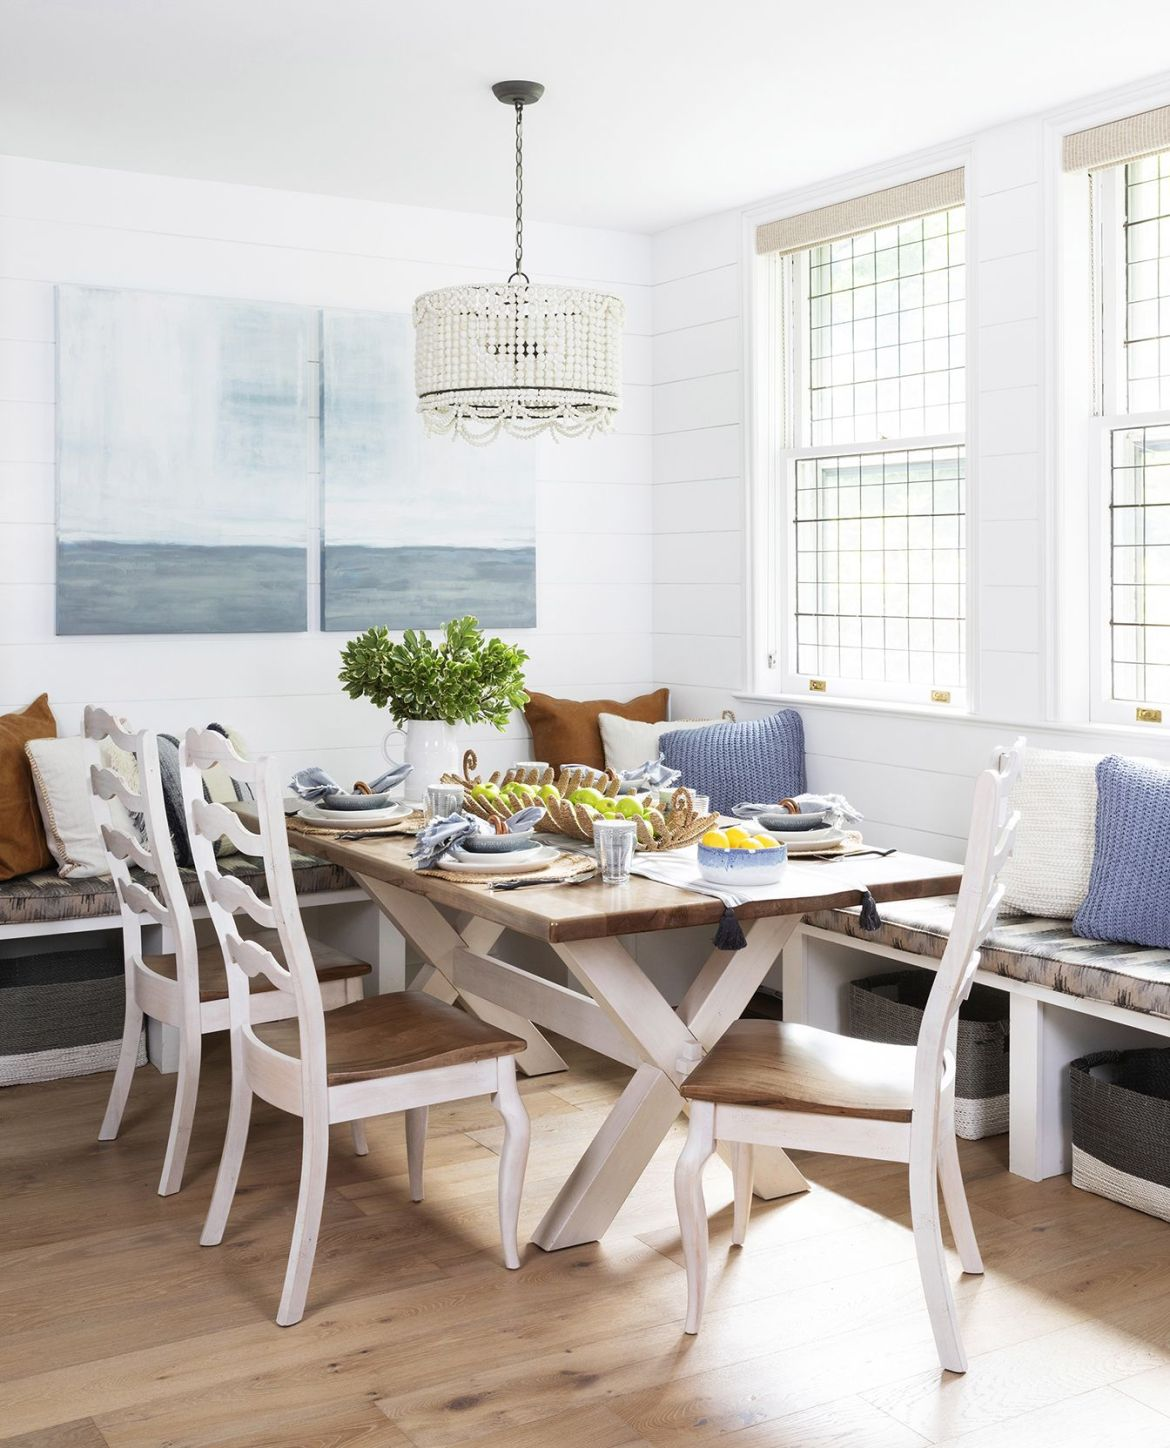 home featuring warm neutrals and soothing blue hues to accent the beautiful architecture of the vintage home interior designer karen b wolf dining room, breakfast nook